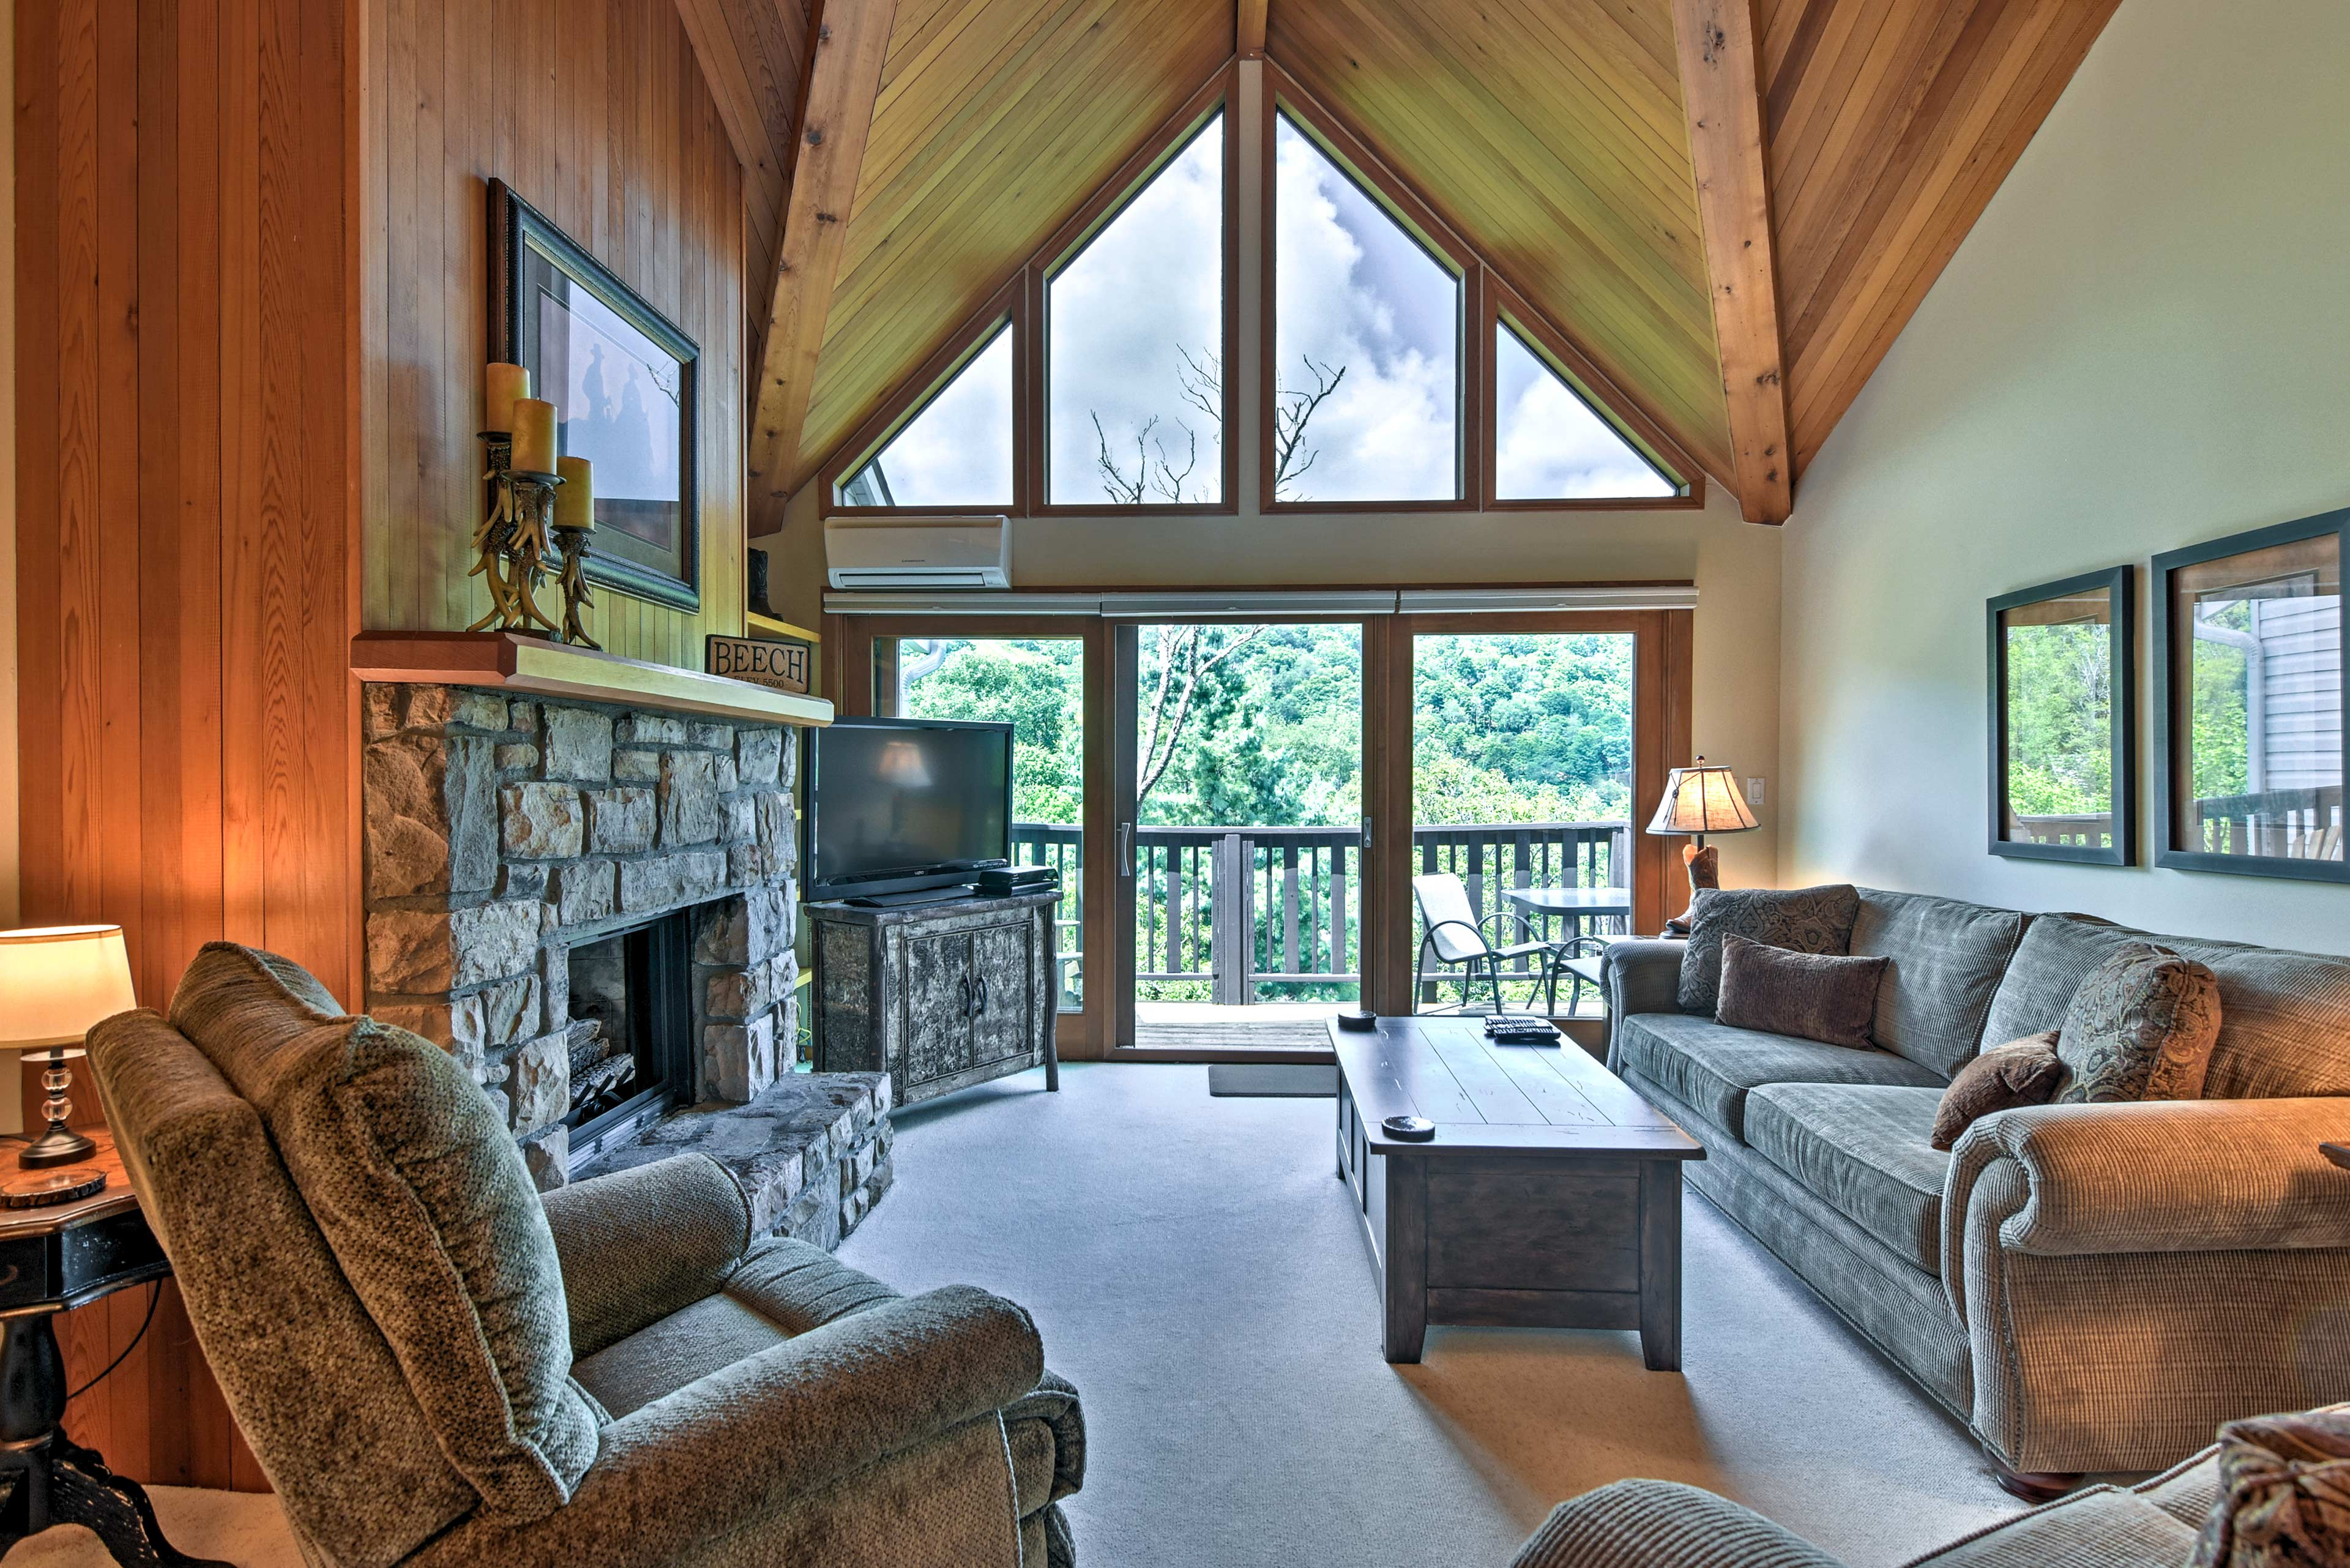 Natural light spills in through the wall of windows exposing the wood ceilings.